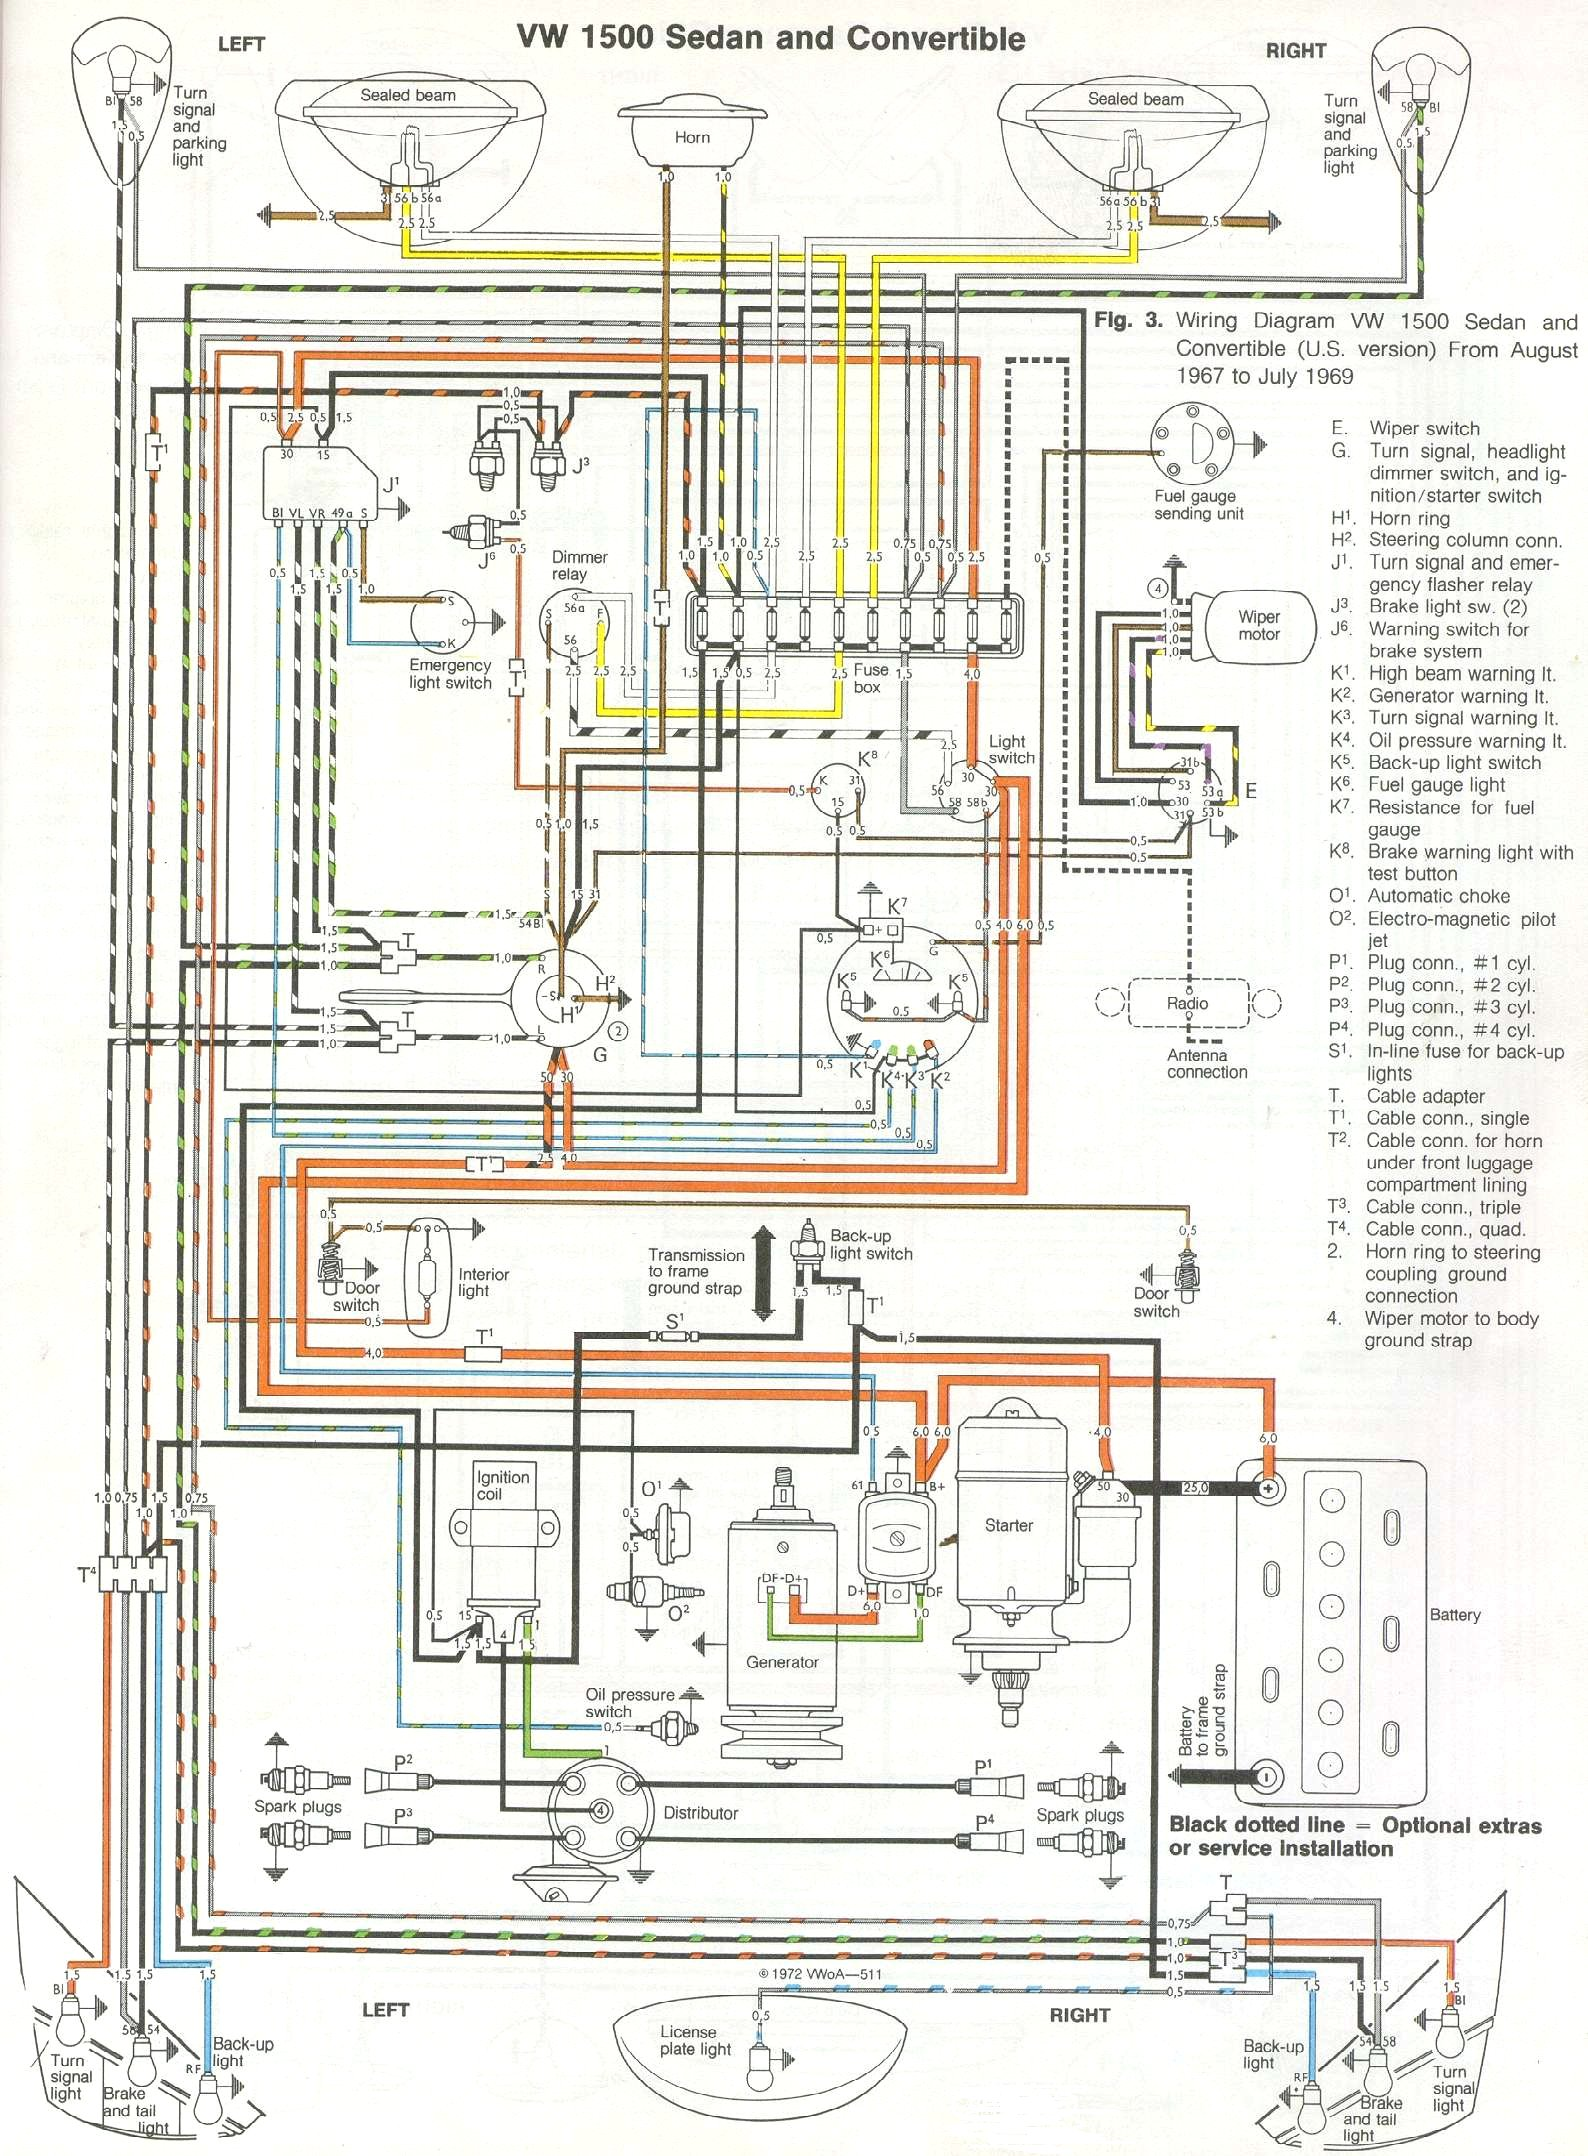 Vw Bug Fuse Diagram vw beetle starter wiring diagram vw ... New Beetle Starter Wiring Diagram on